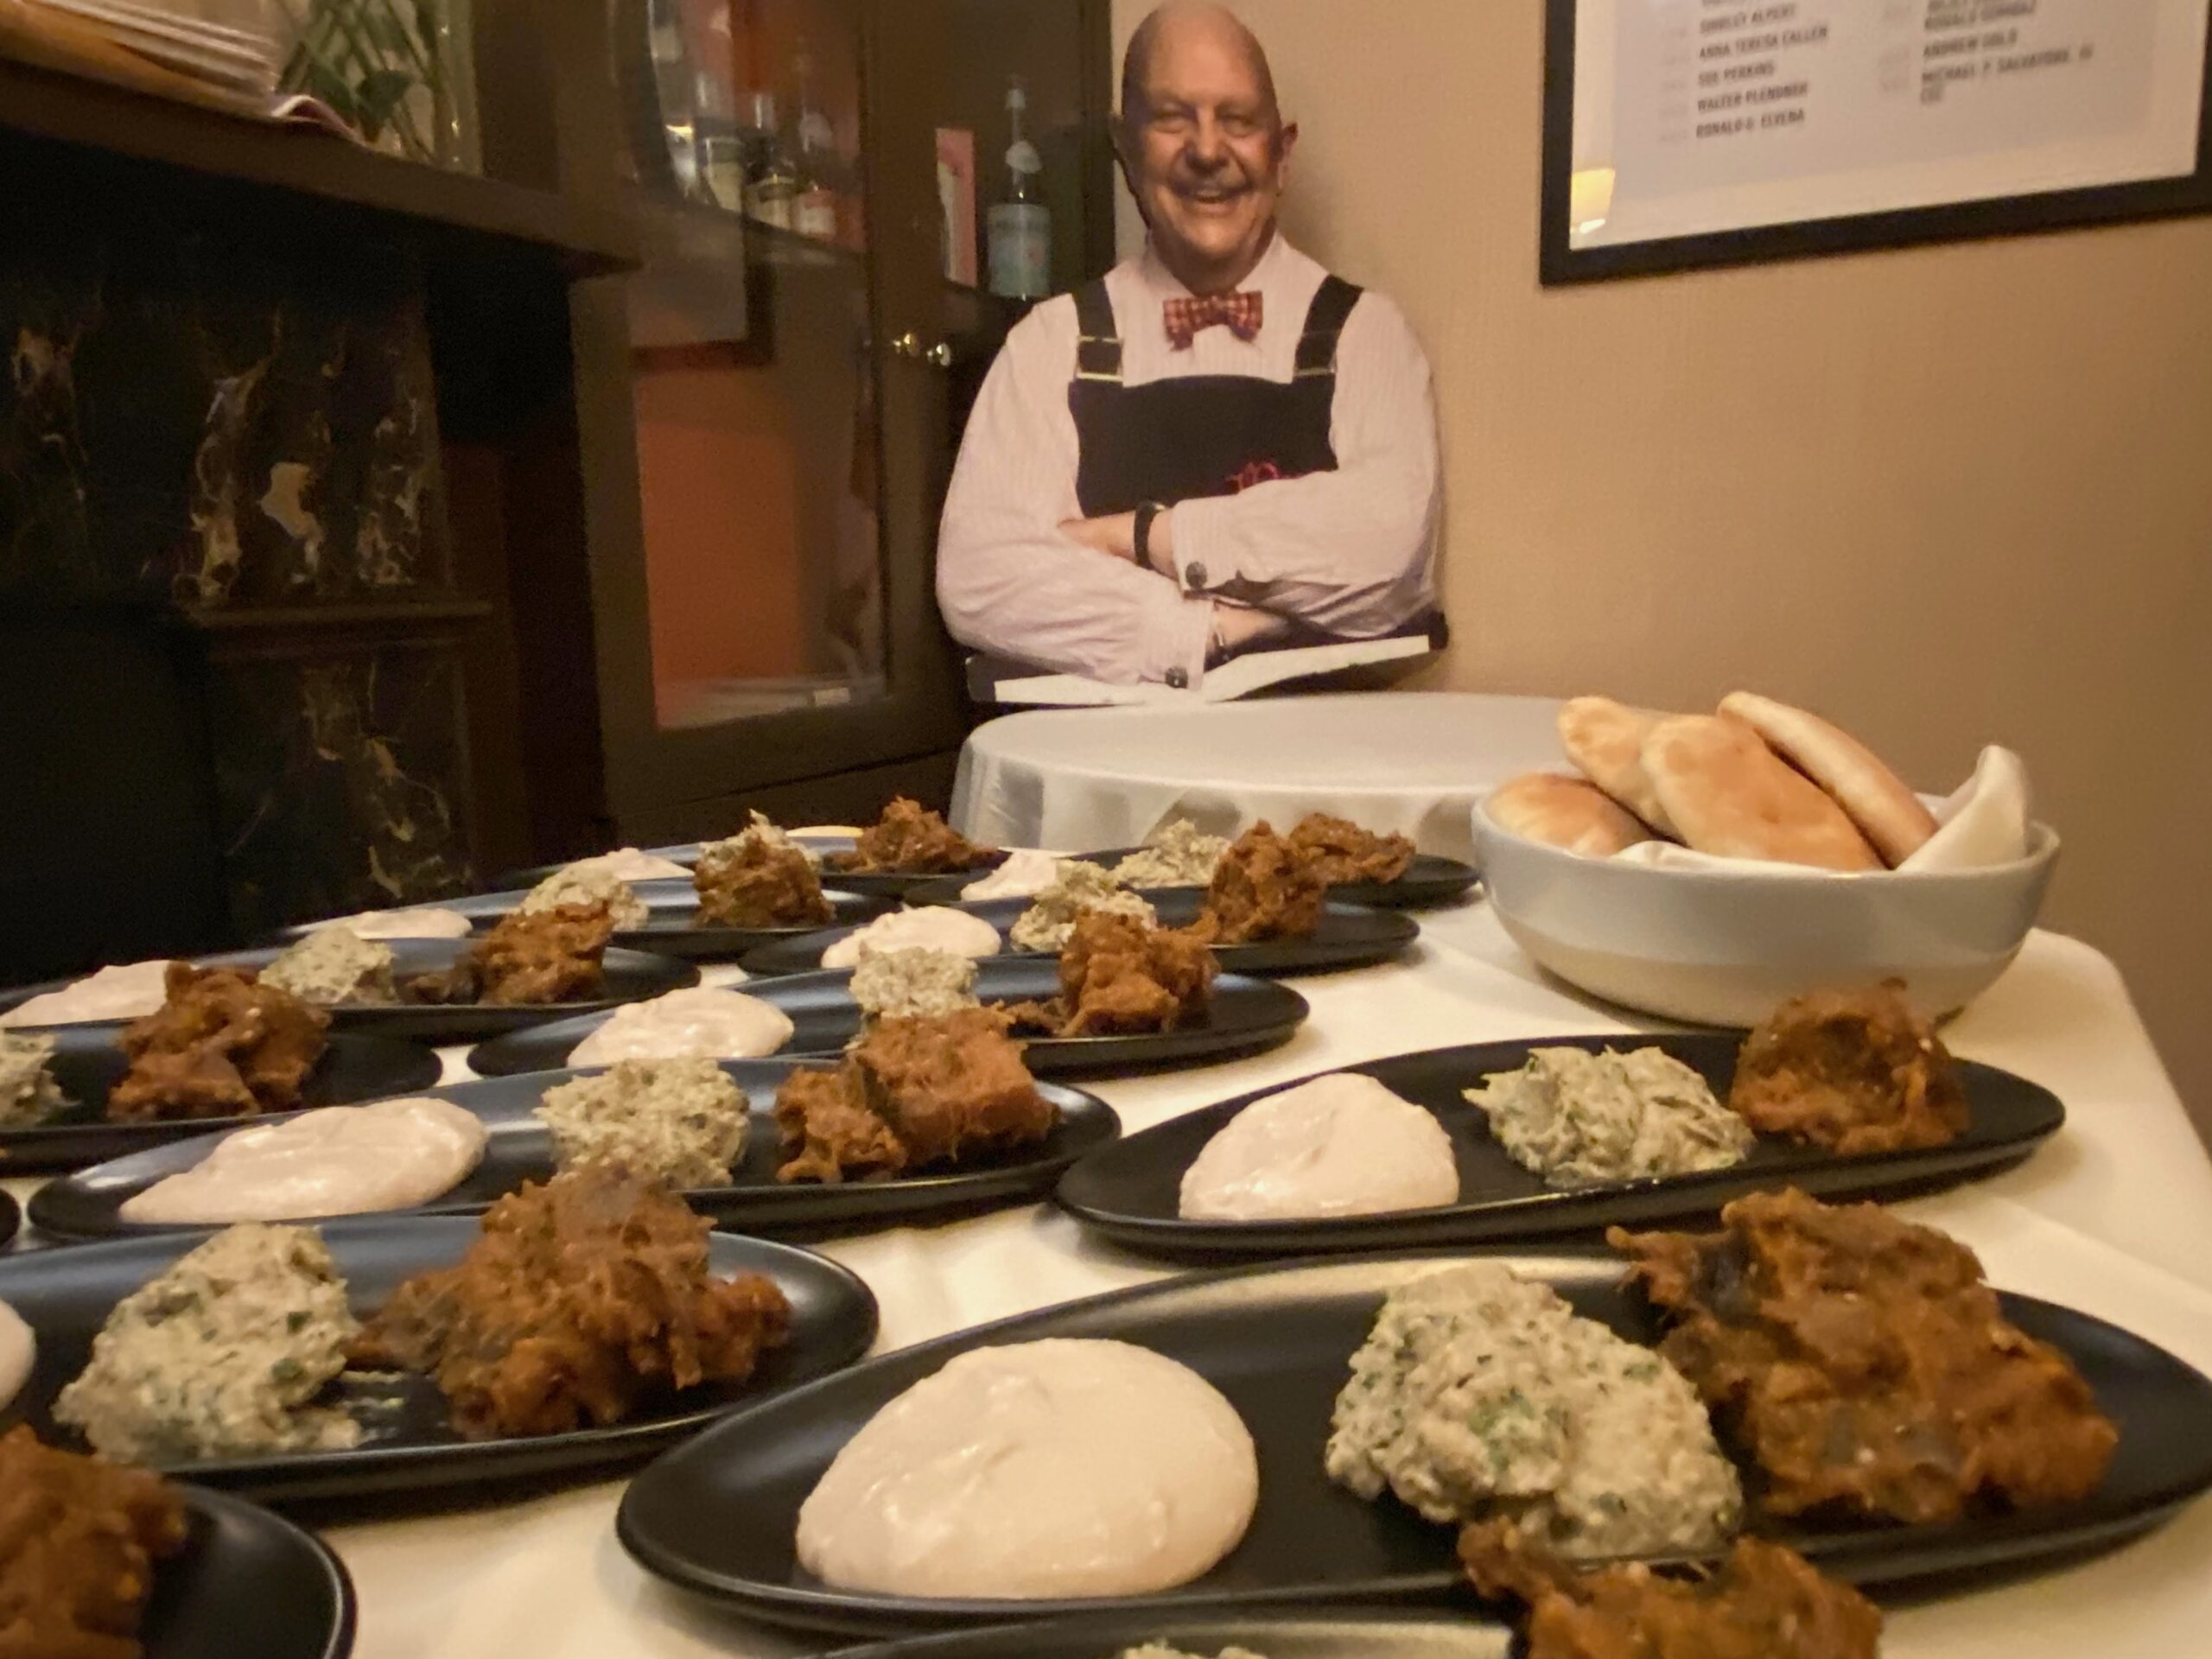 Behind the scenes at the regal James Beard House in Manhattan with Chef Avi Shemtov